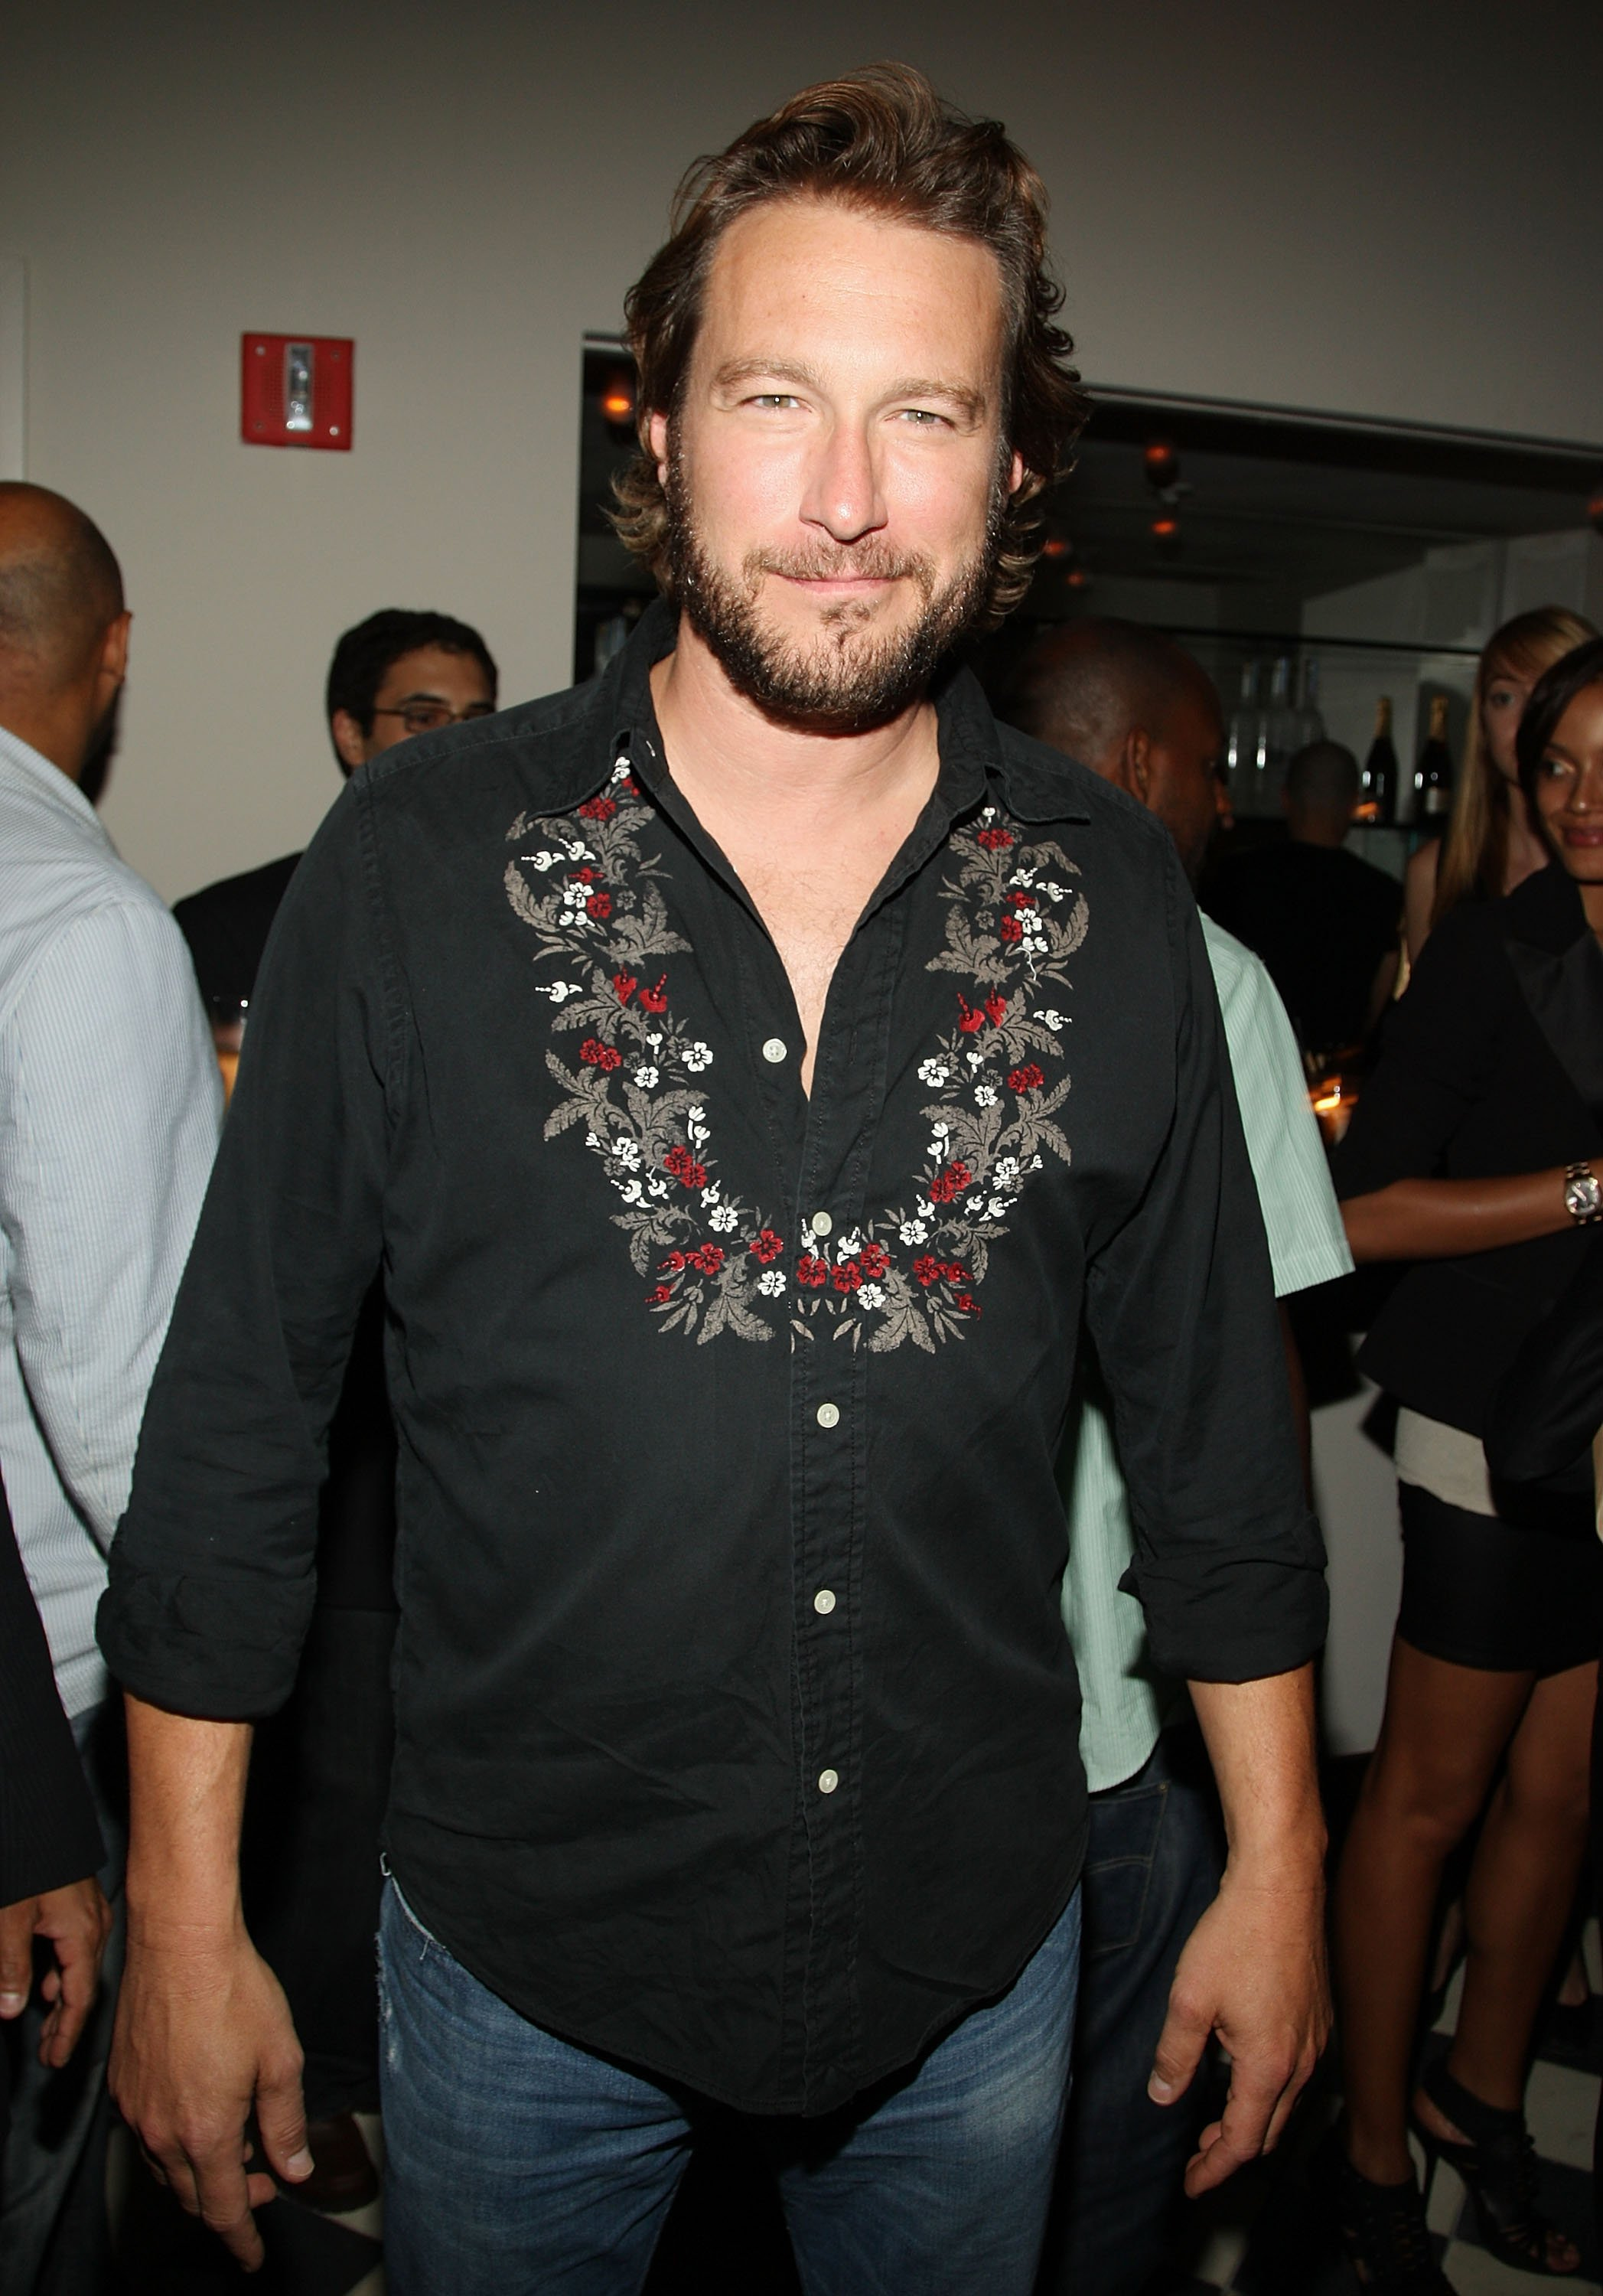 Image Credits: Getty Images / The award winning actor, John Corbett smile for a photo.